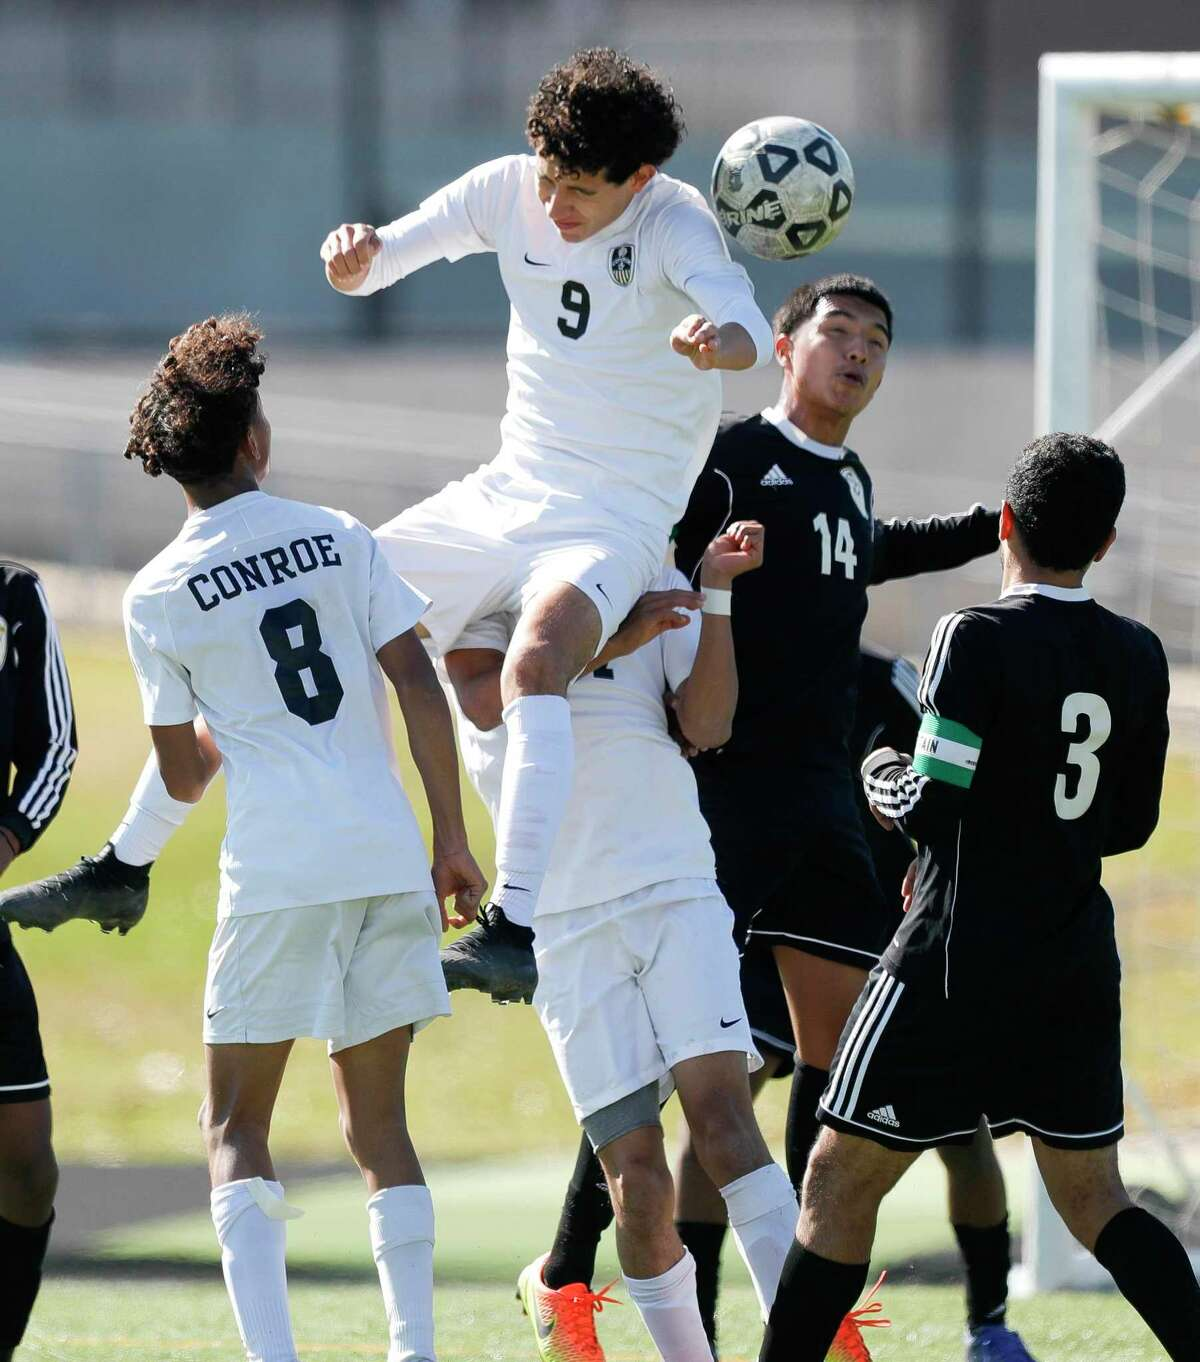 Conroe's David De La Paz (9) heads the ball against Sharpstown's Alexis Vargas Revollar (14) in the first period of a match during the Kilt Cup soccer tournament, Saturday, Jan. 9, 2021, in Conroe. Conroe defeated Sharpstown 4-3.